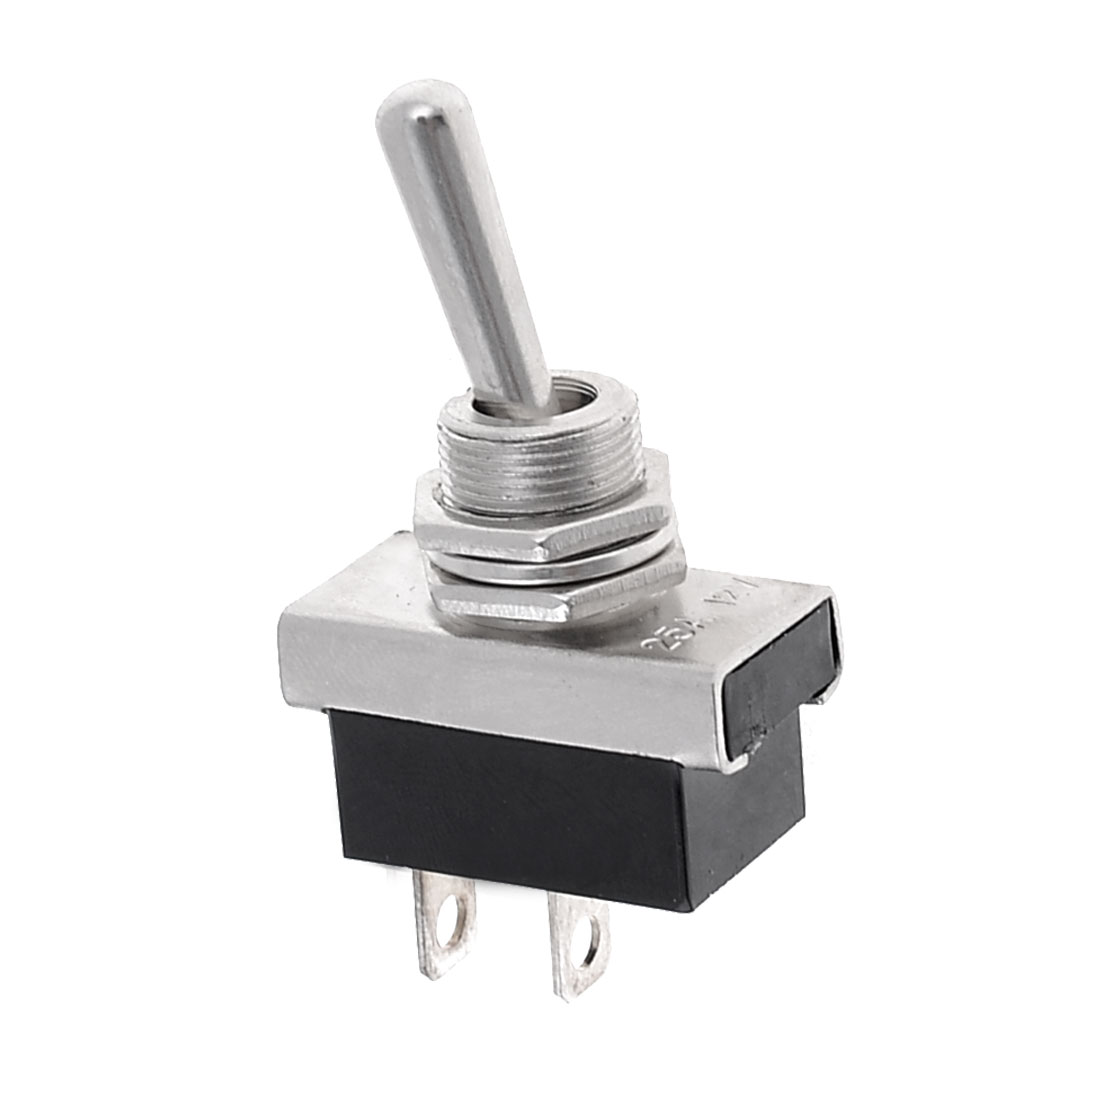 X Autohaux Auto Car Spst On Off Type Toggle Switch 12V 25A-in Car ...